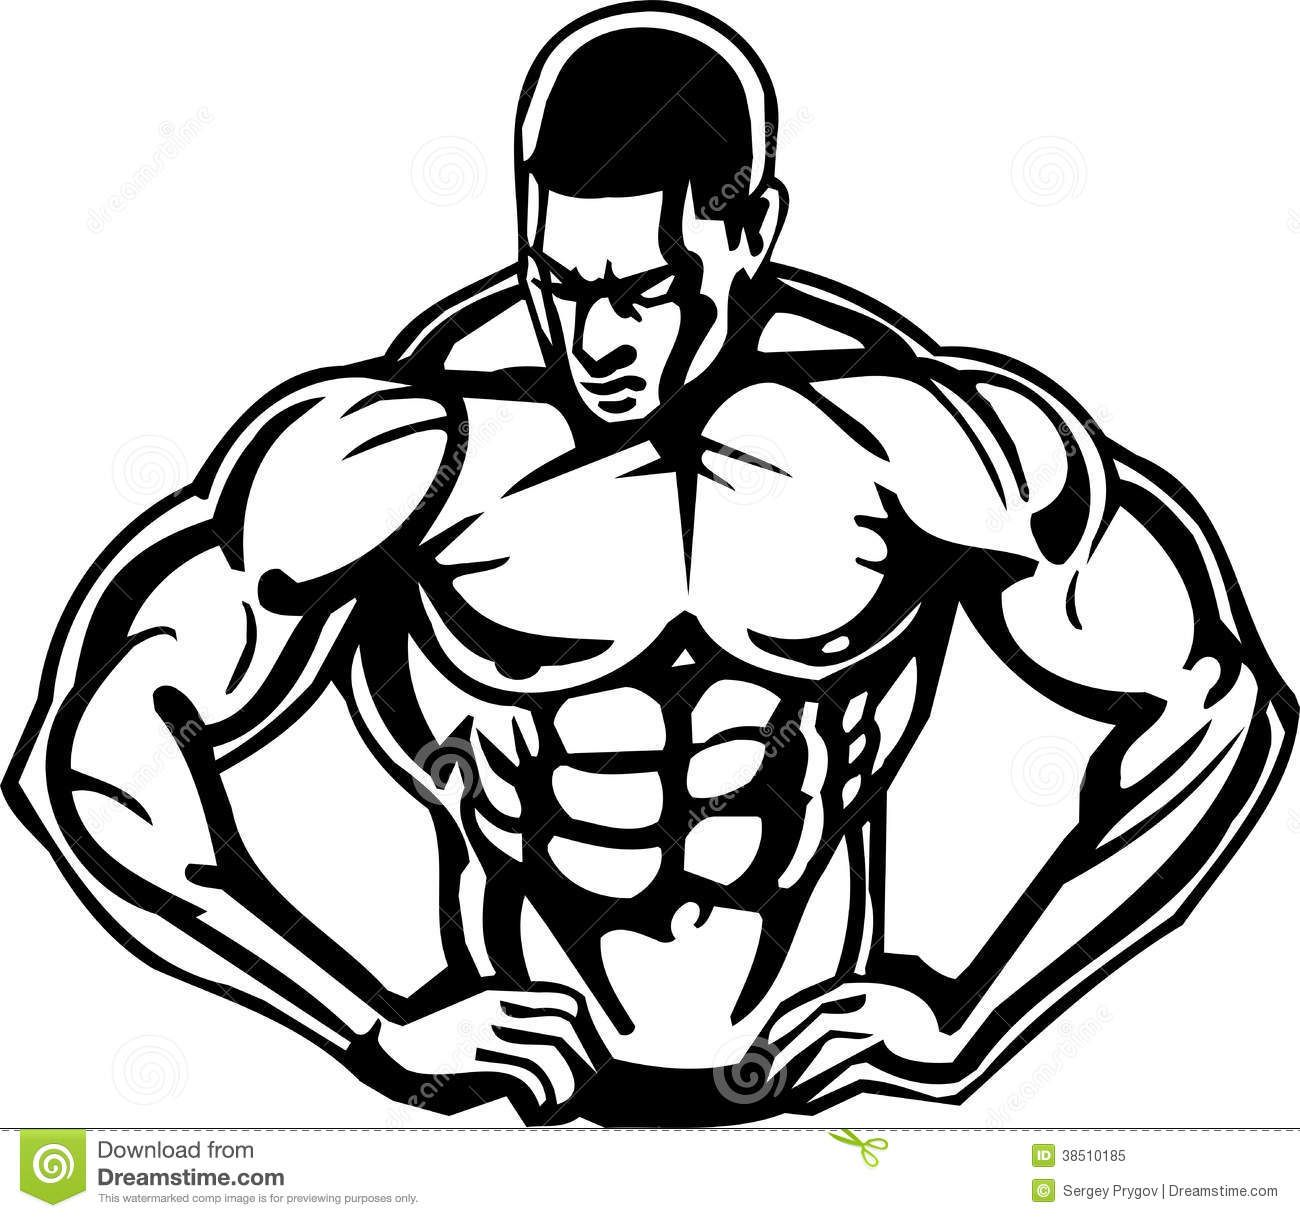 Pin On Building Muscle Fast